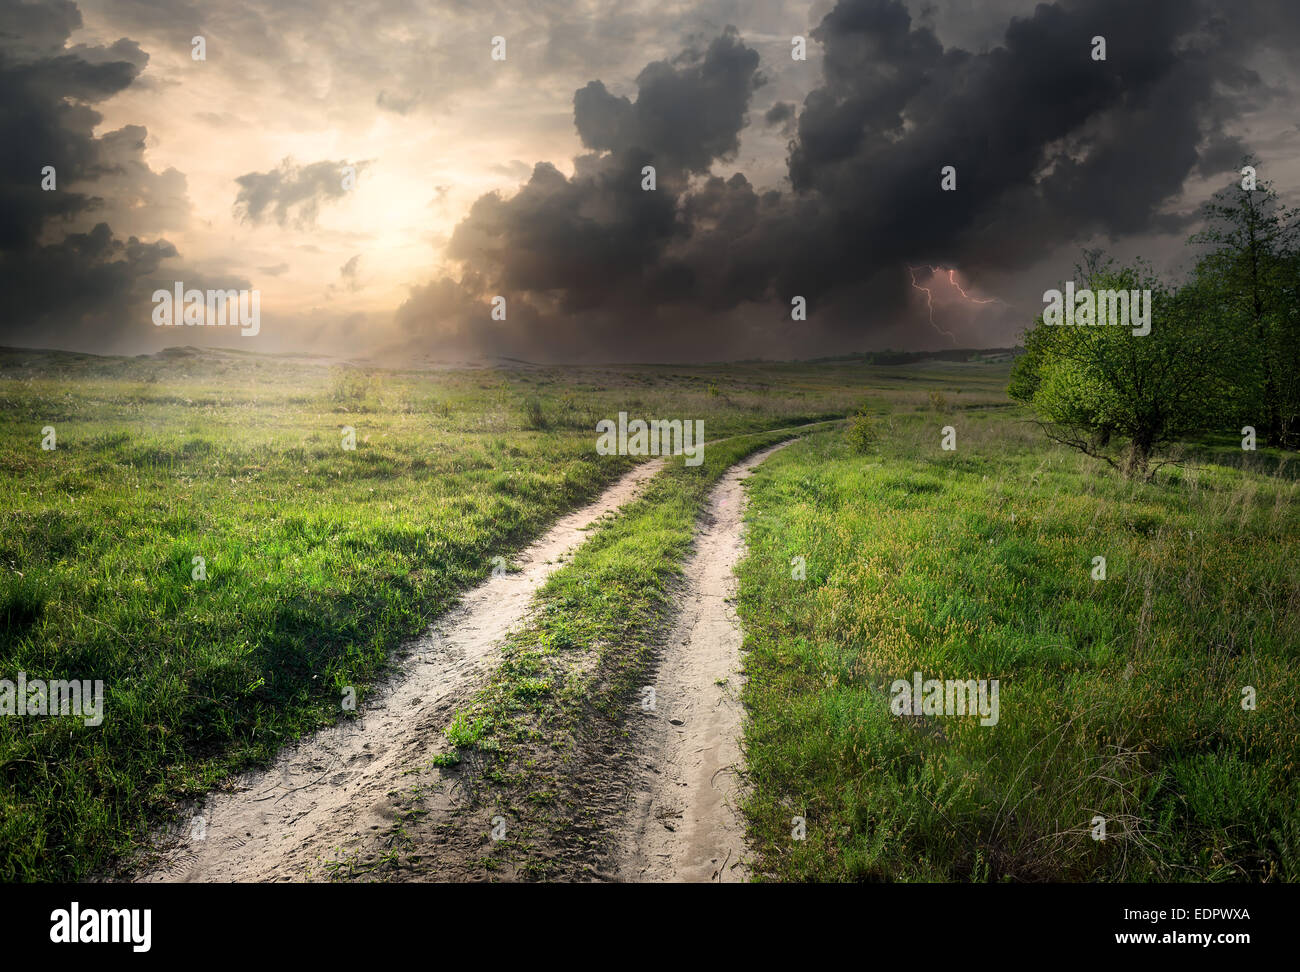 Lightning and storm clouds over country road - Stock Image